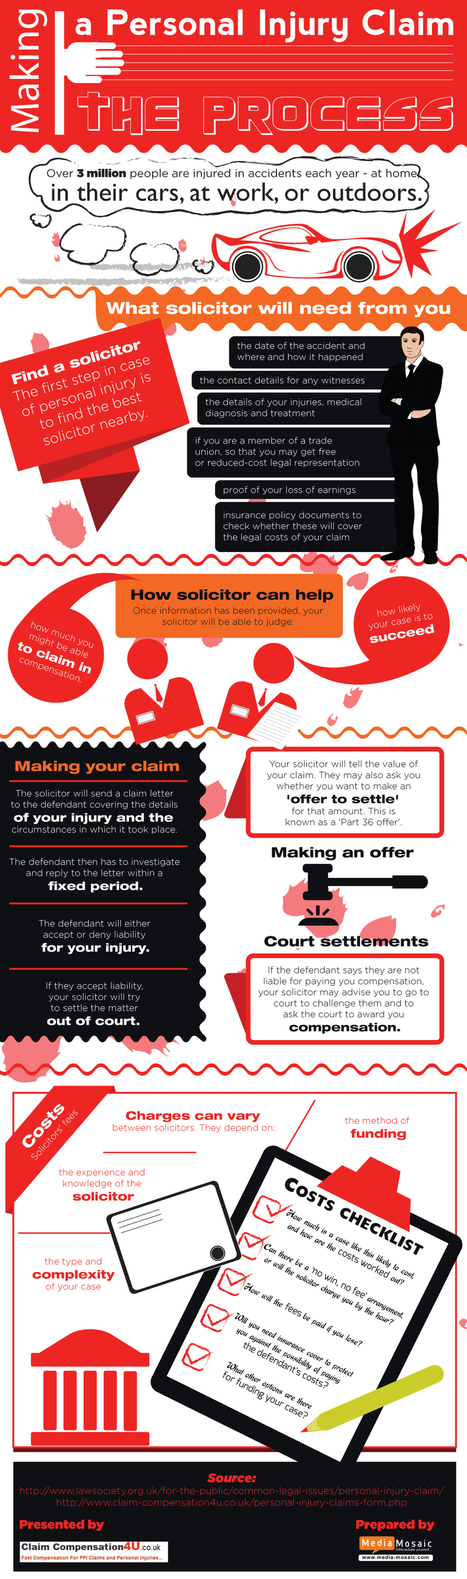 Making a Personal Injury Claim : The Process [Info Graphic] | personal injury law | Scoop.it